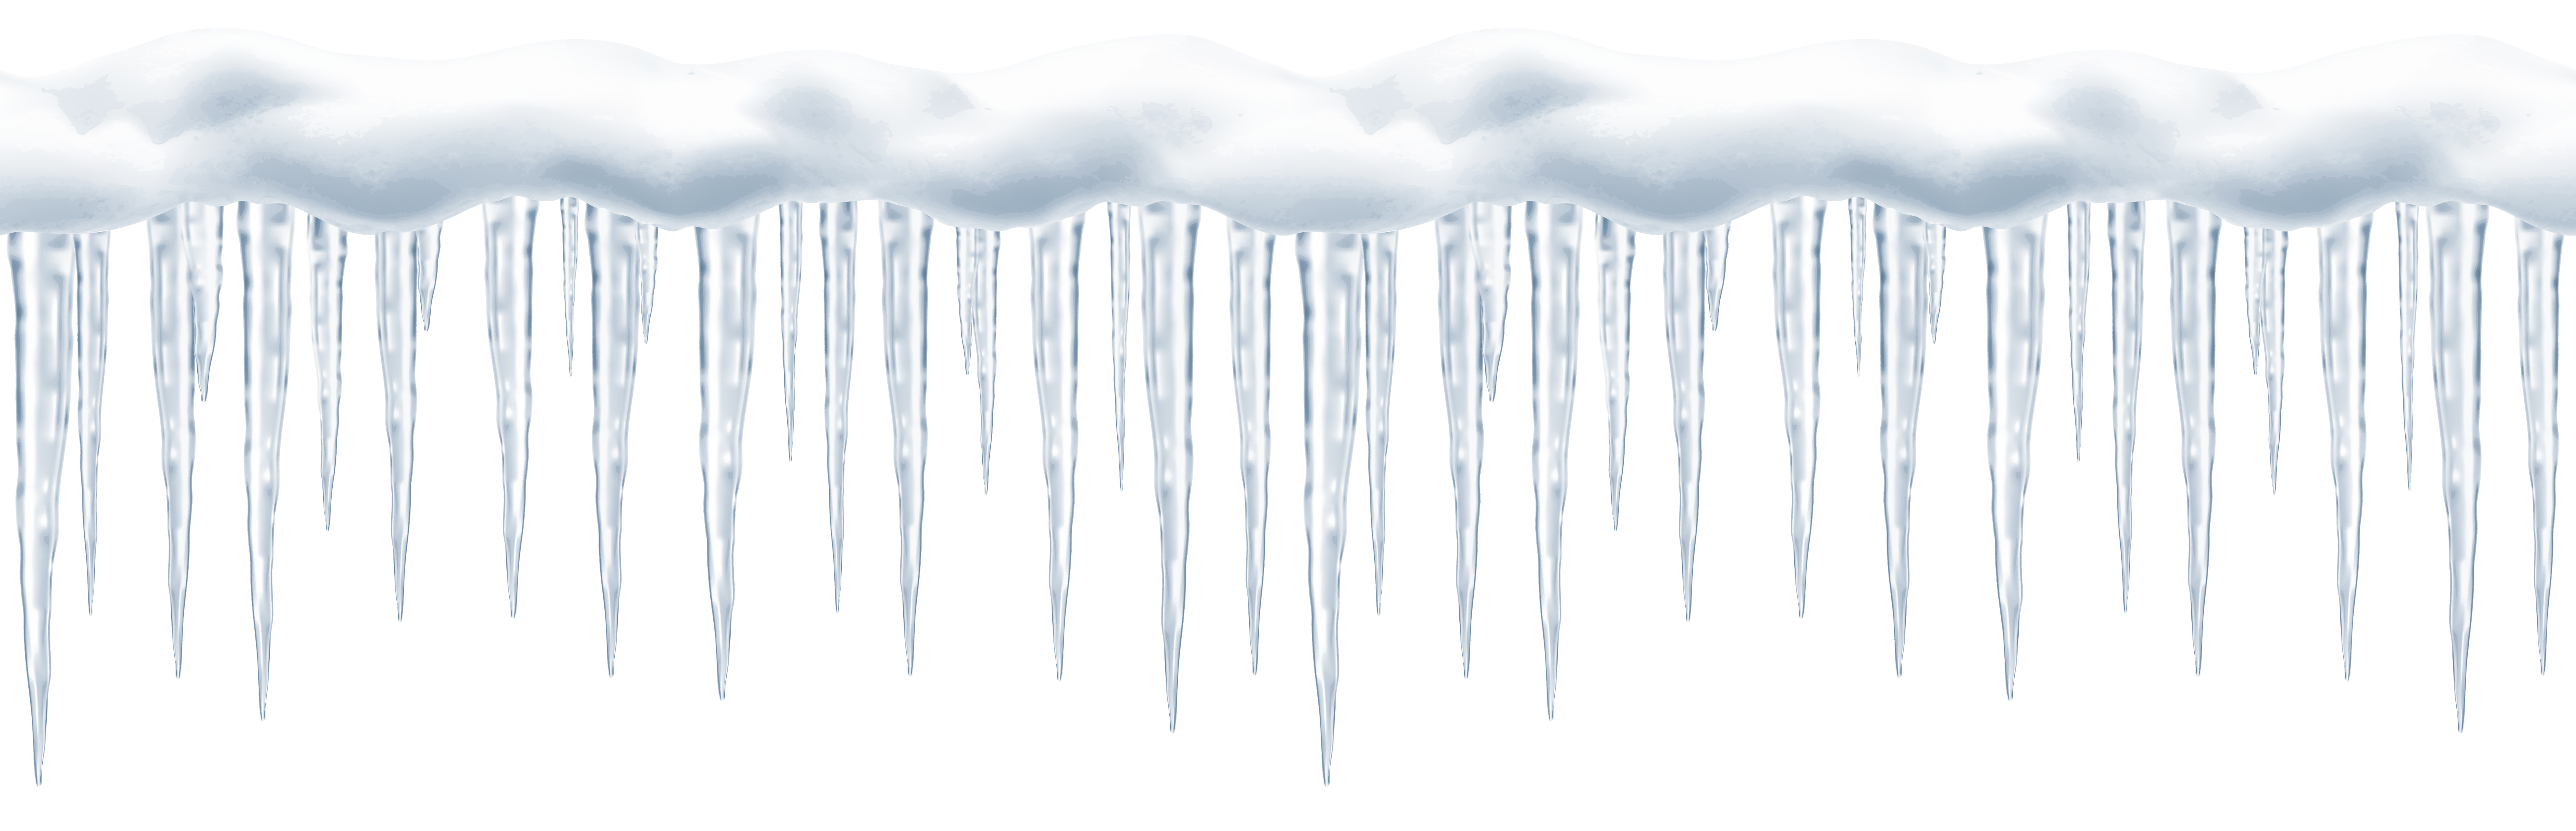 A Long Pointy Icicle Transparent Photo  image #48613